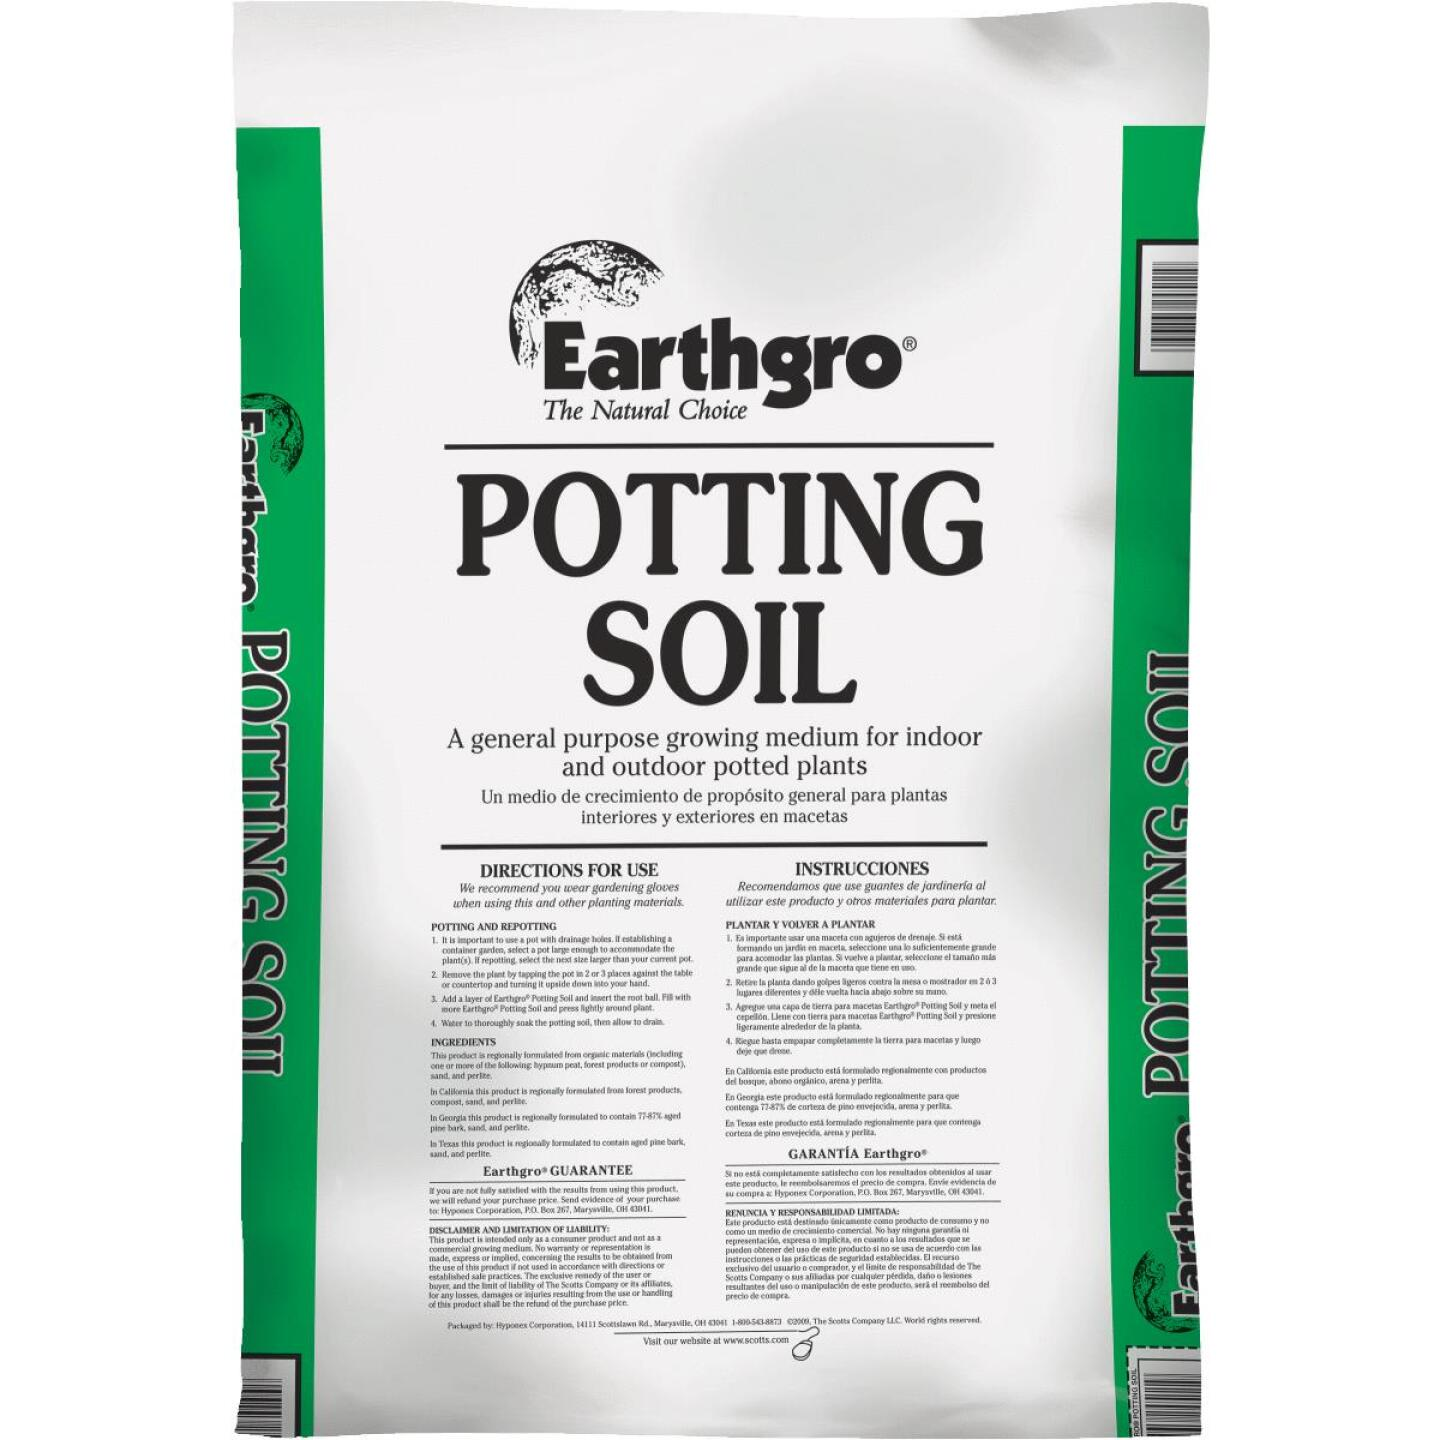 Earthgro 10 Qt. All Purpose Indoor & Outdoor Potting Soil Image 1